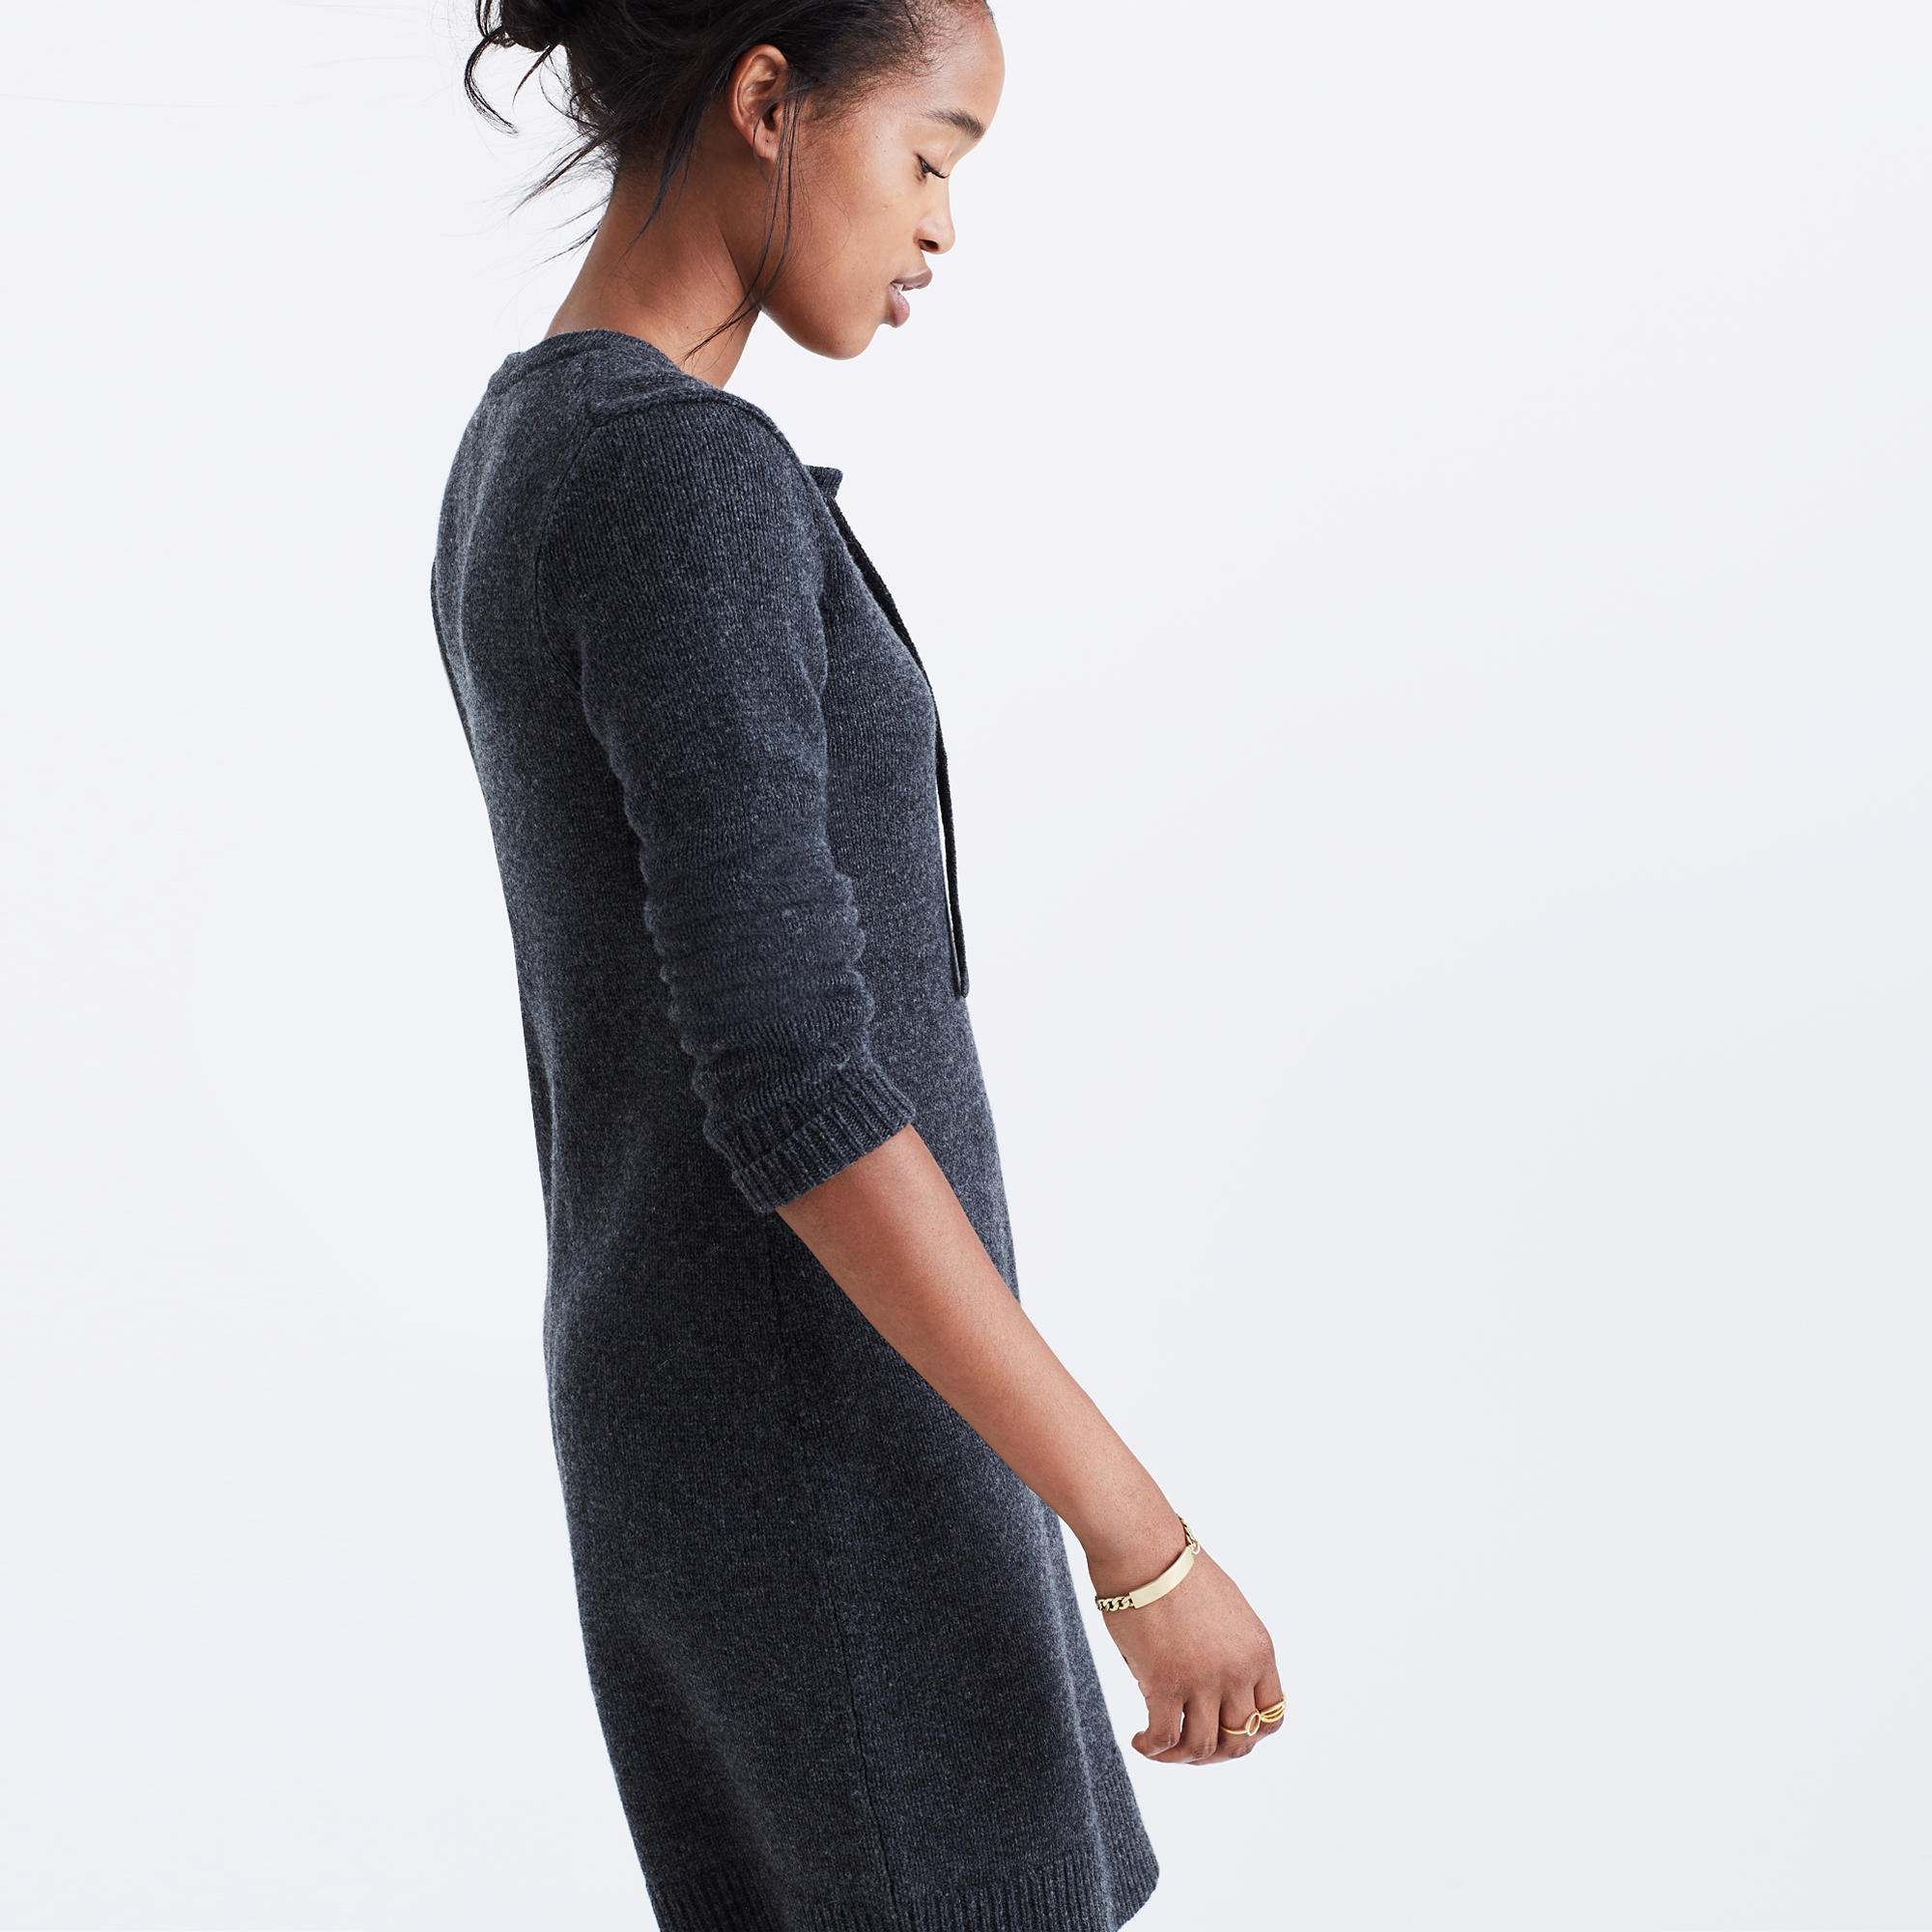 Lace-Up Sweater-Dress : casual dresses | Madewell